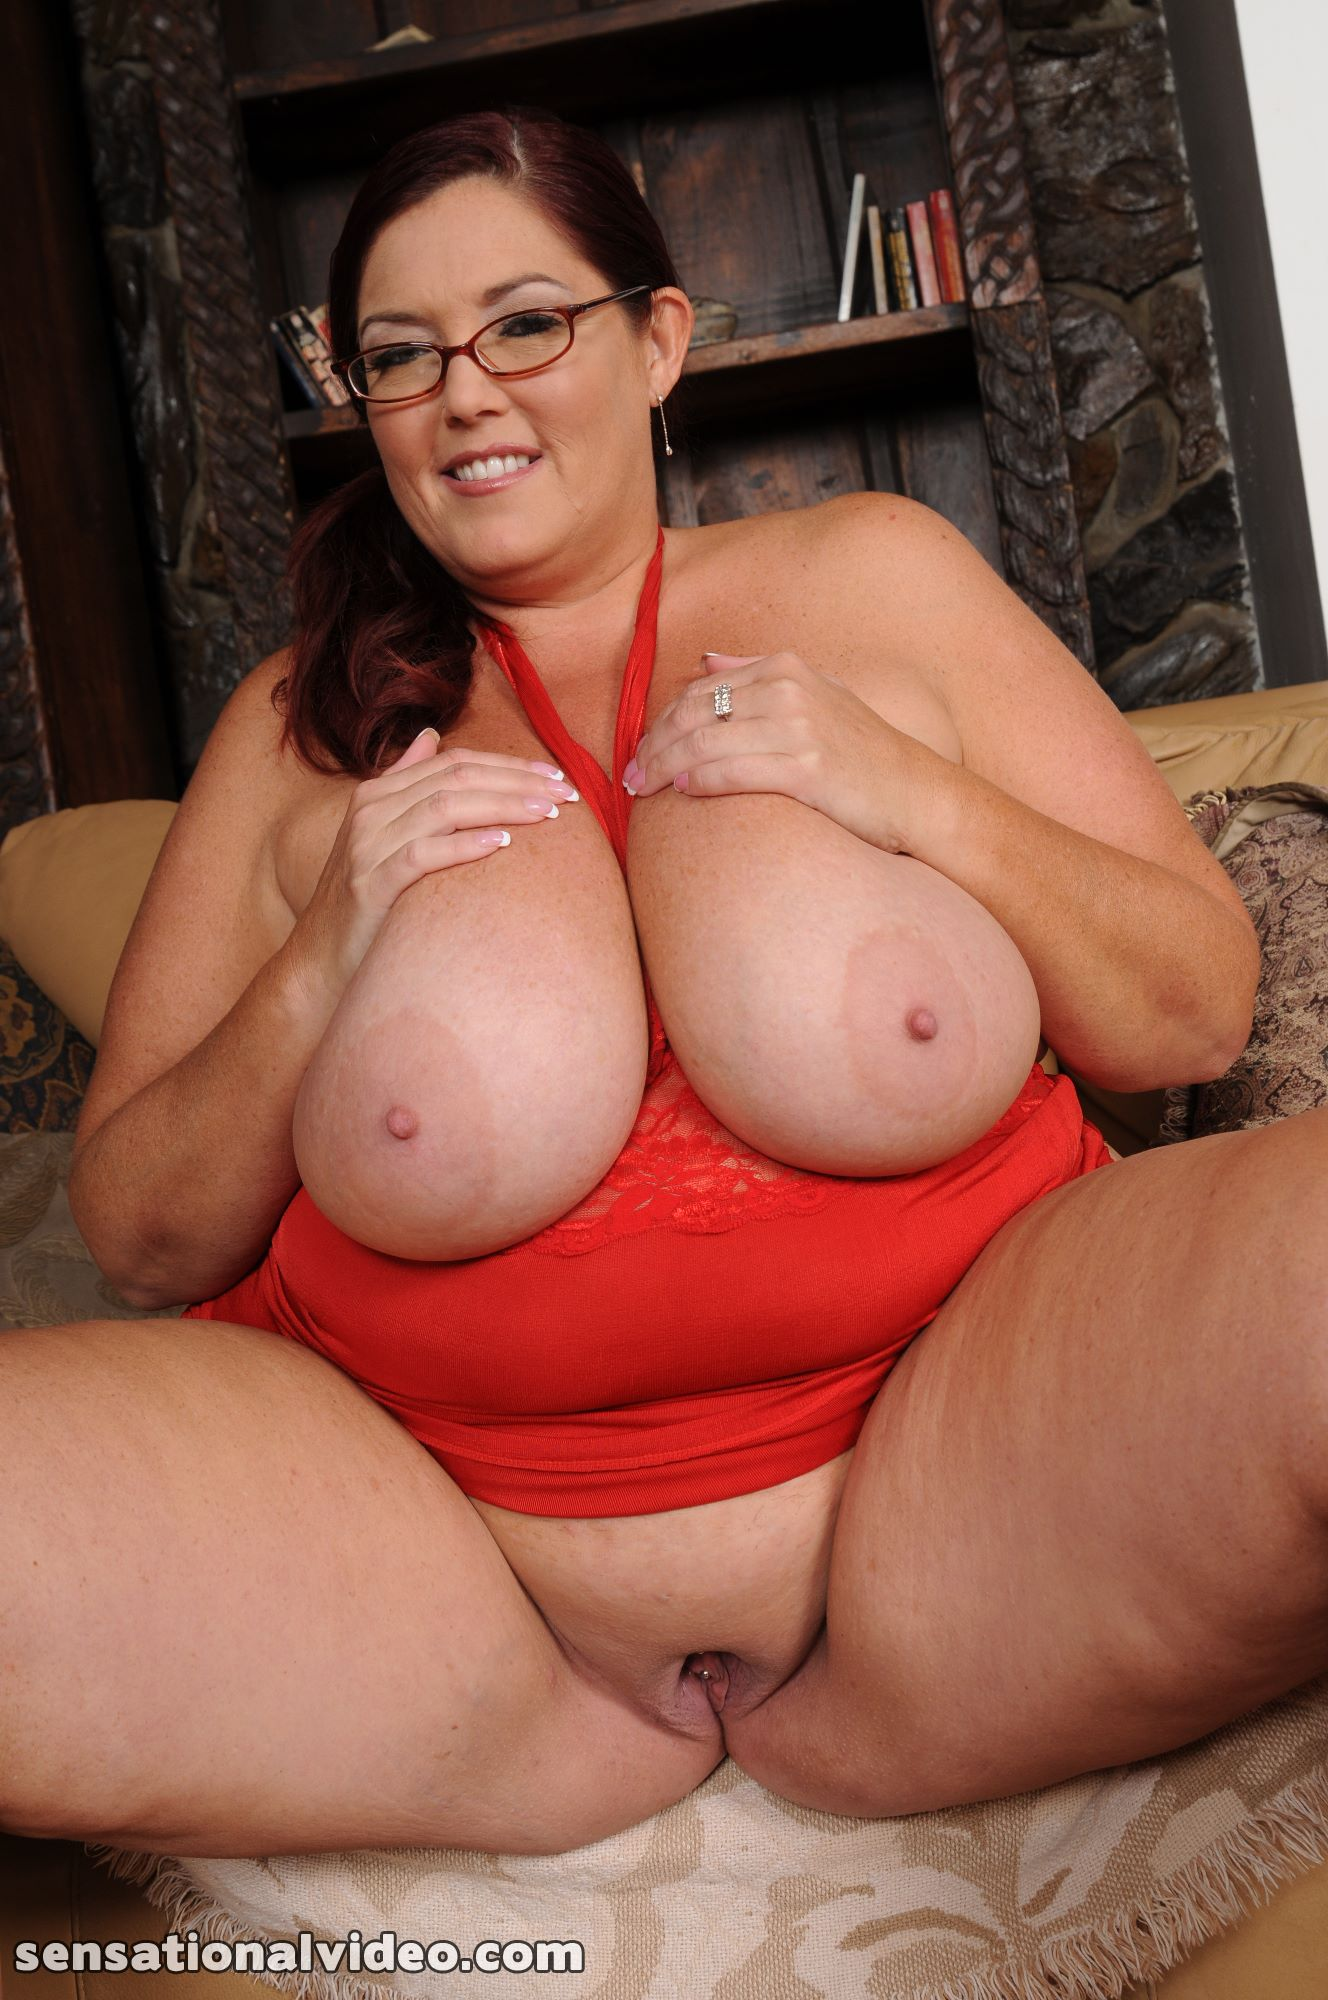 lesgalls spicytitties plumperpass gal553 pic 3